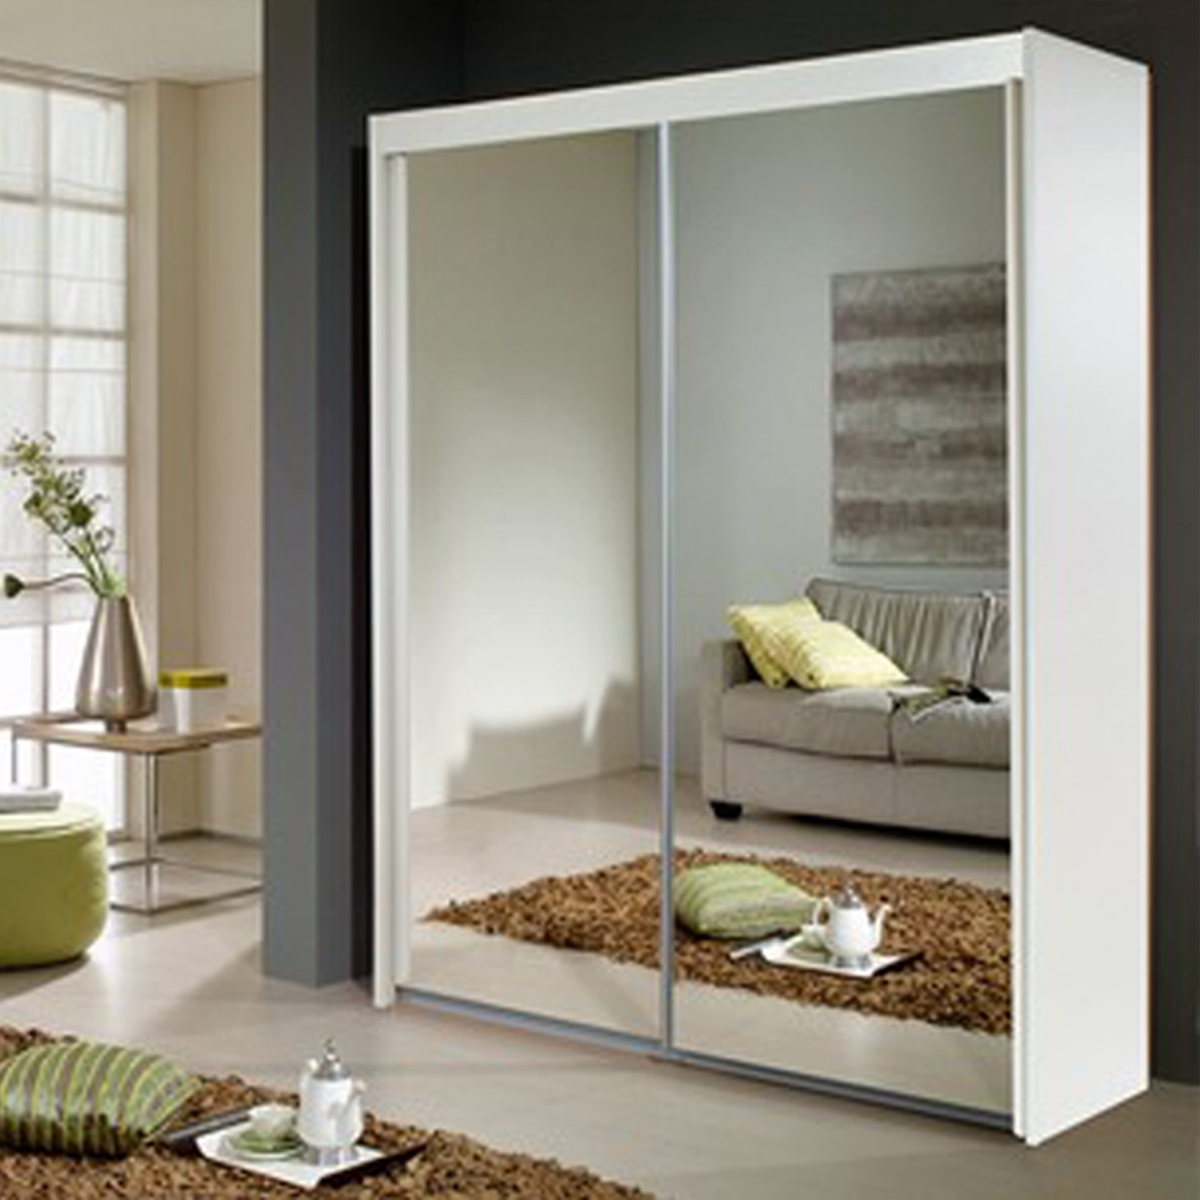 Well Liked Single White Wardrobes With Mirror For Sliding Door Mirrored Wardrobe From The House Of Reeves Croydon (View 13 of 15)